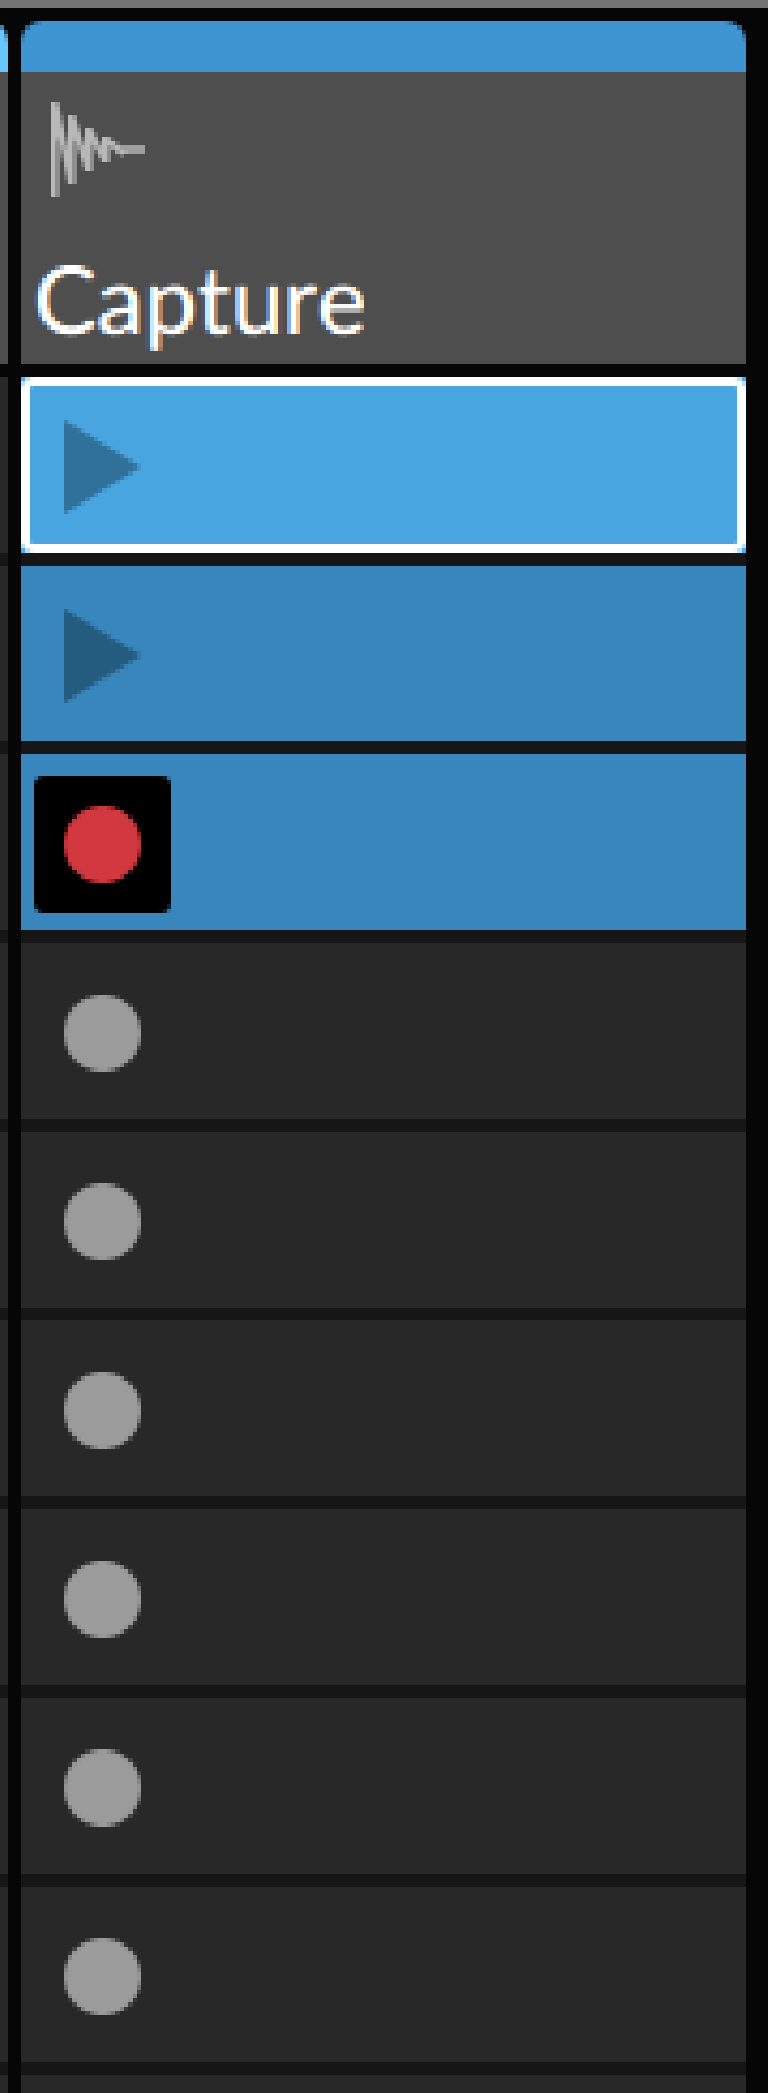 PIC 3: Bitwig automatically recording input to new Clips at two-bar intervals.